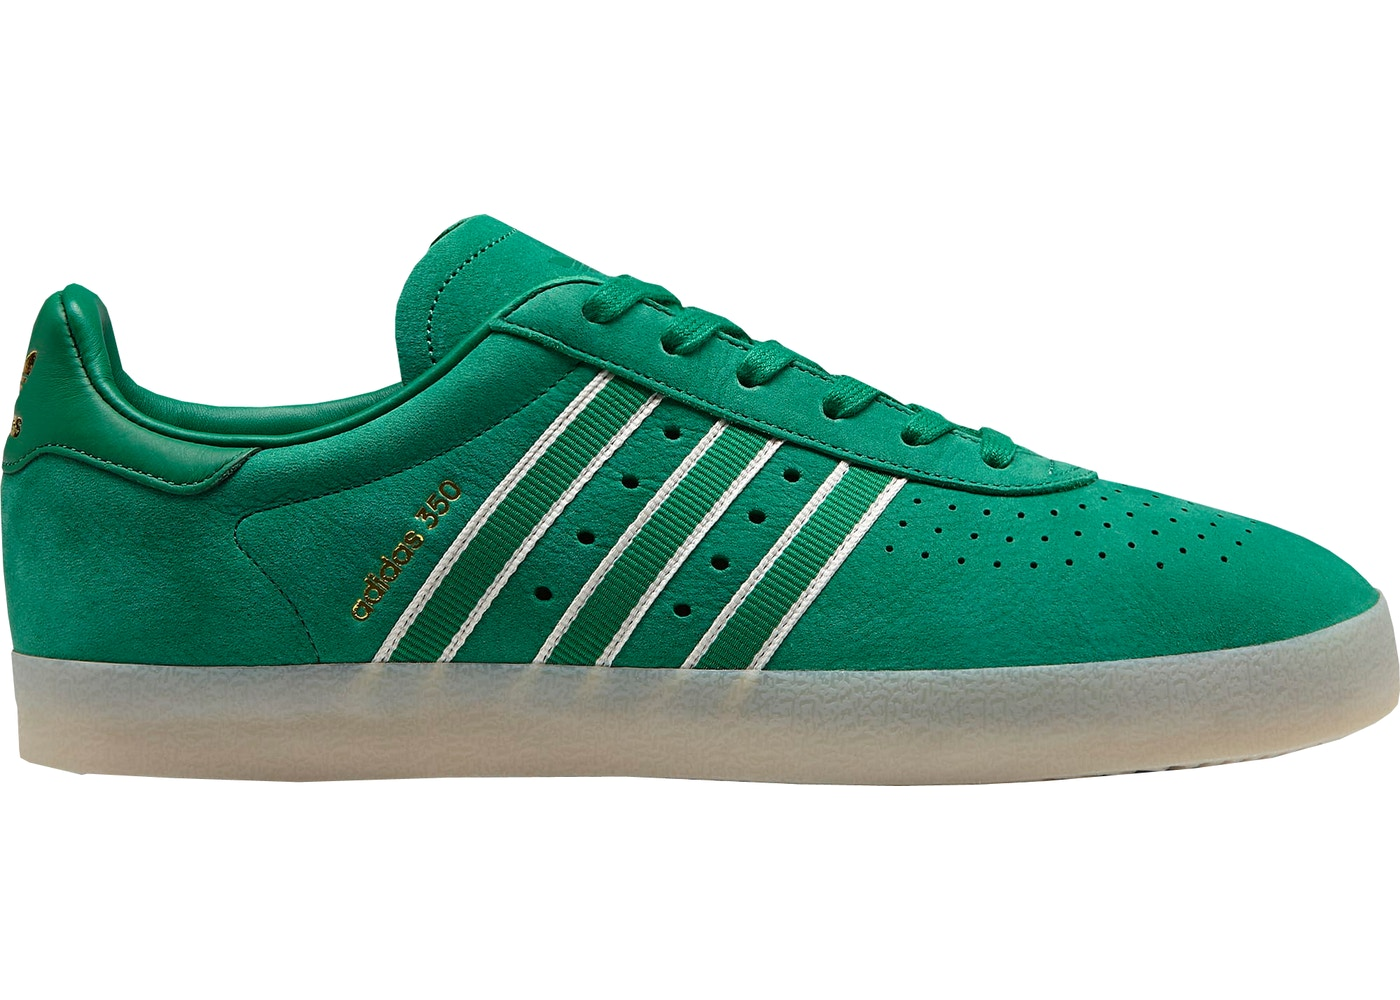 hot sales a42e1 848f8 Sell. or Ask. Size 10. View All Bids. adidas 350 Oyster Holdings ...